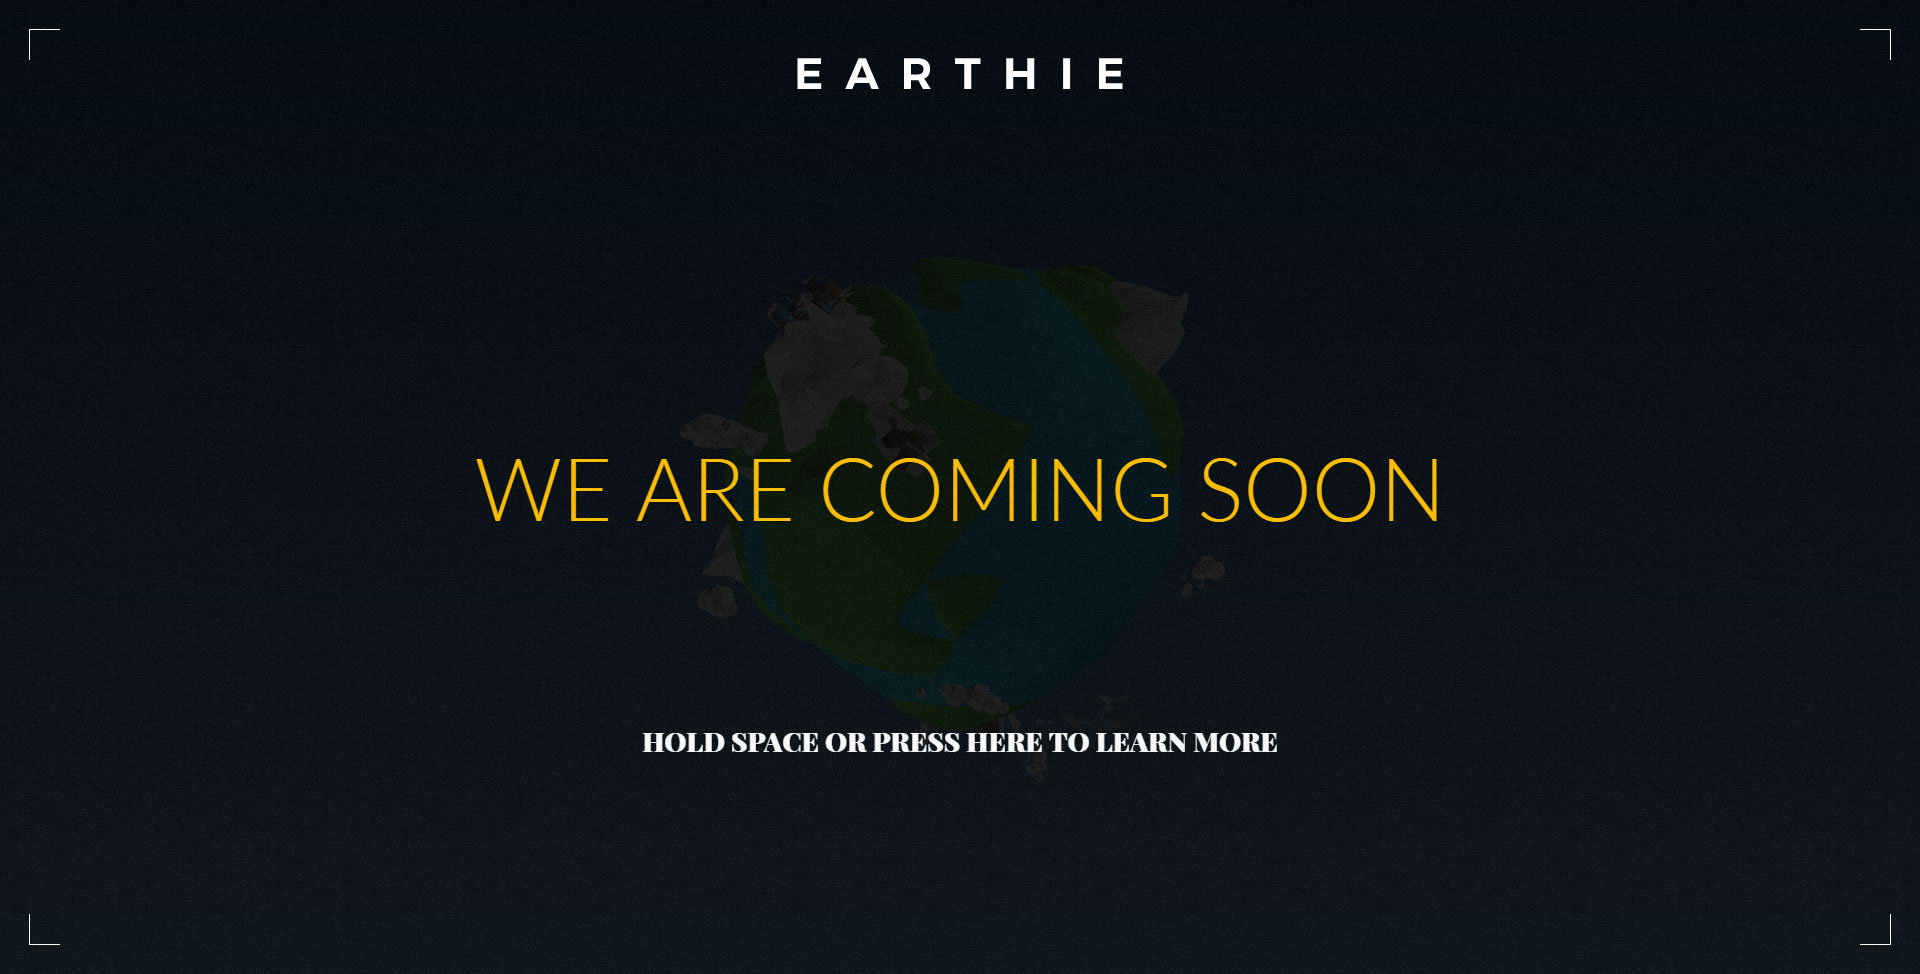 Earthie Creative 3d Coming Soon Template By Boom Apps Themeforest